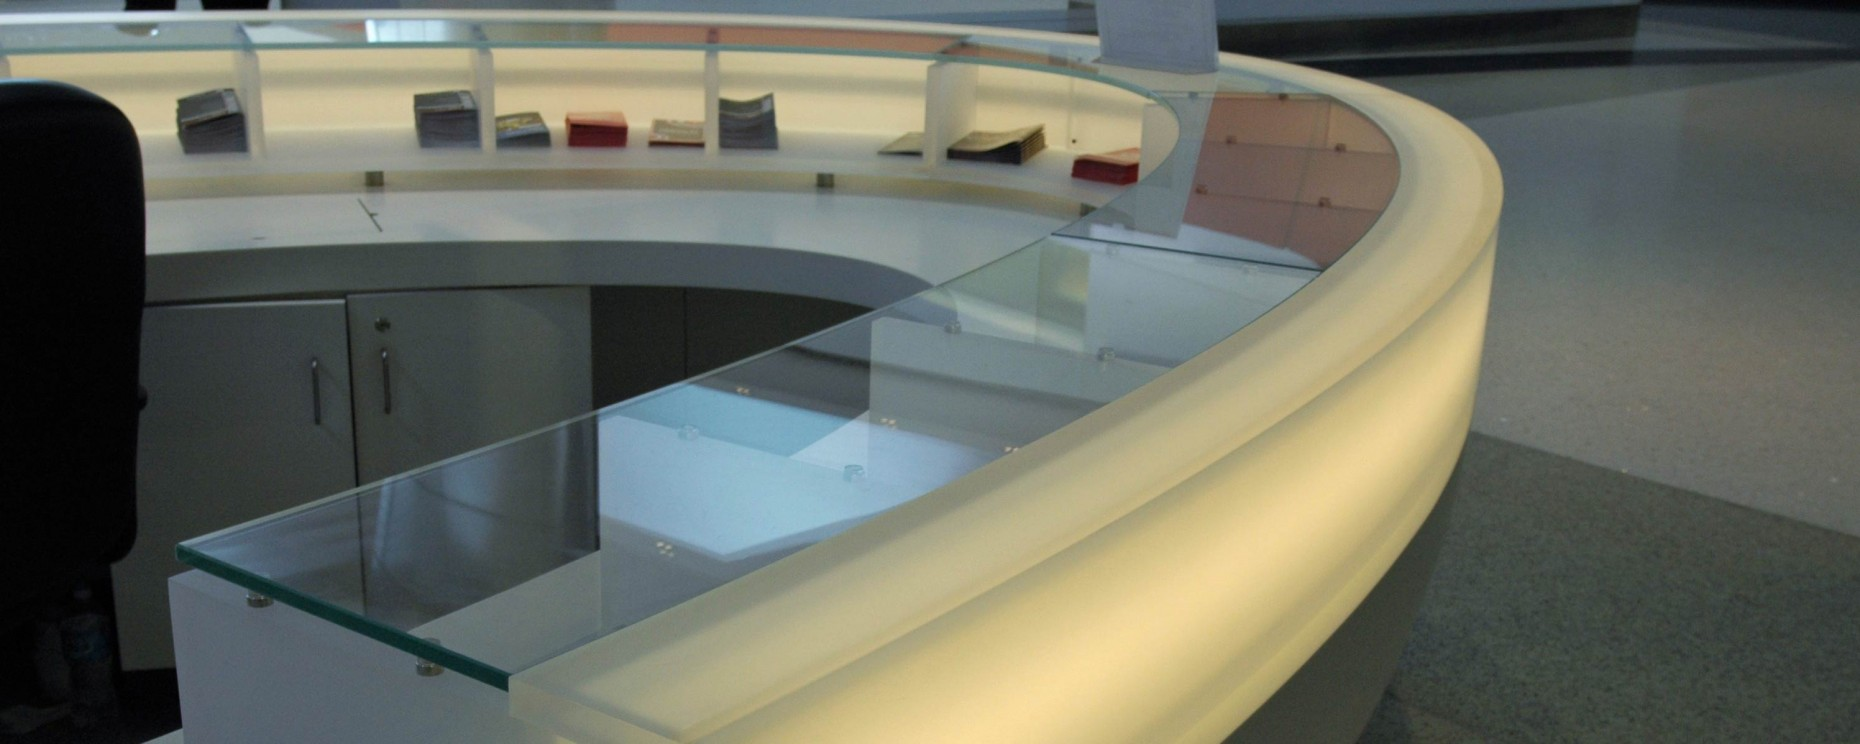 Thermoformed information desk fabricated with DuPont Corian®, 3form® and glass.